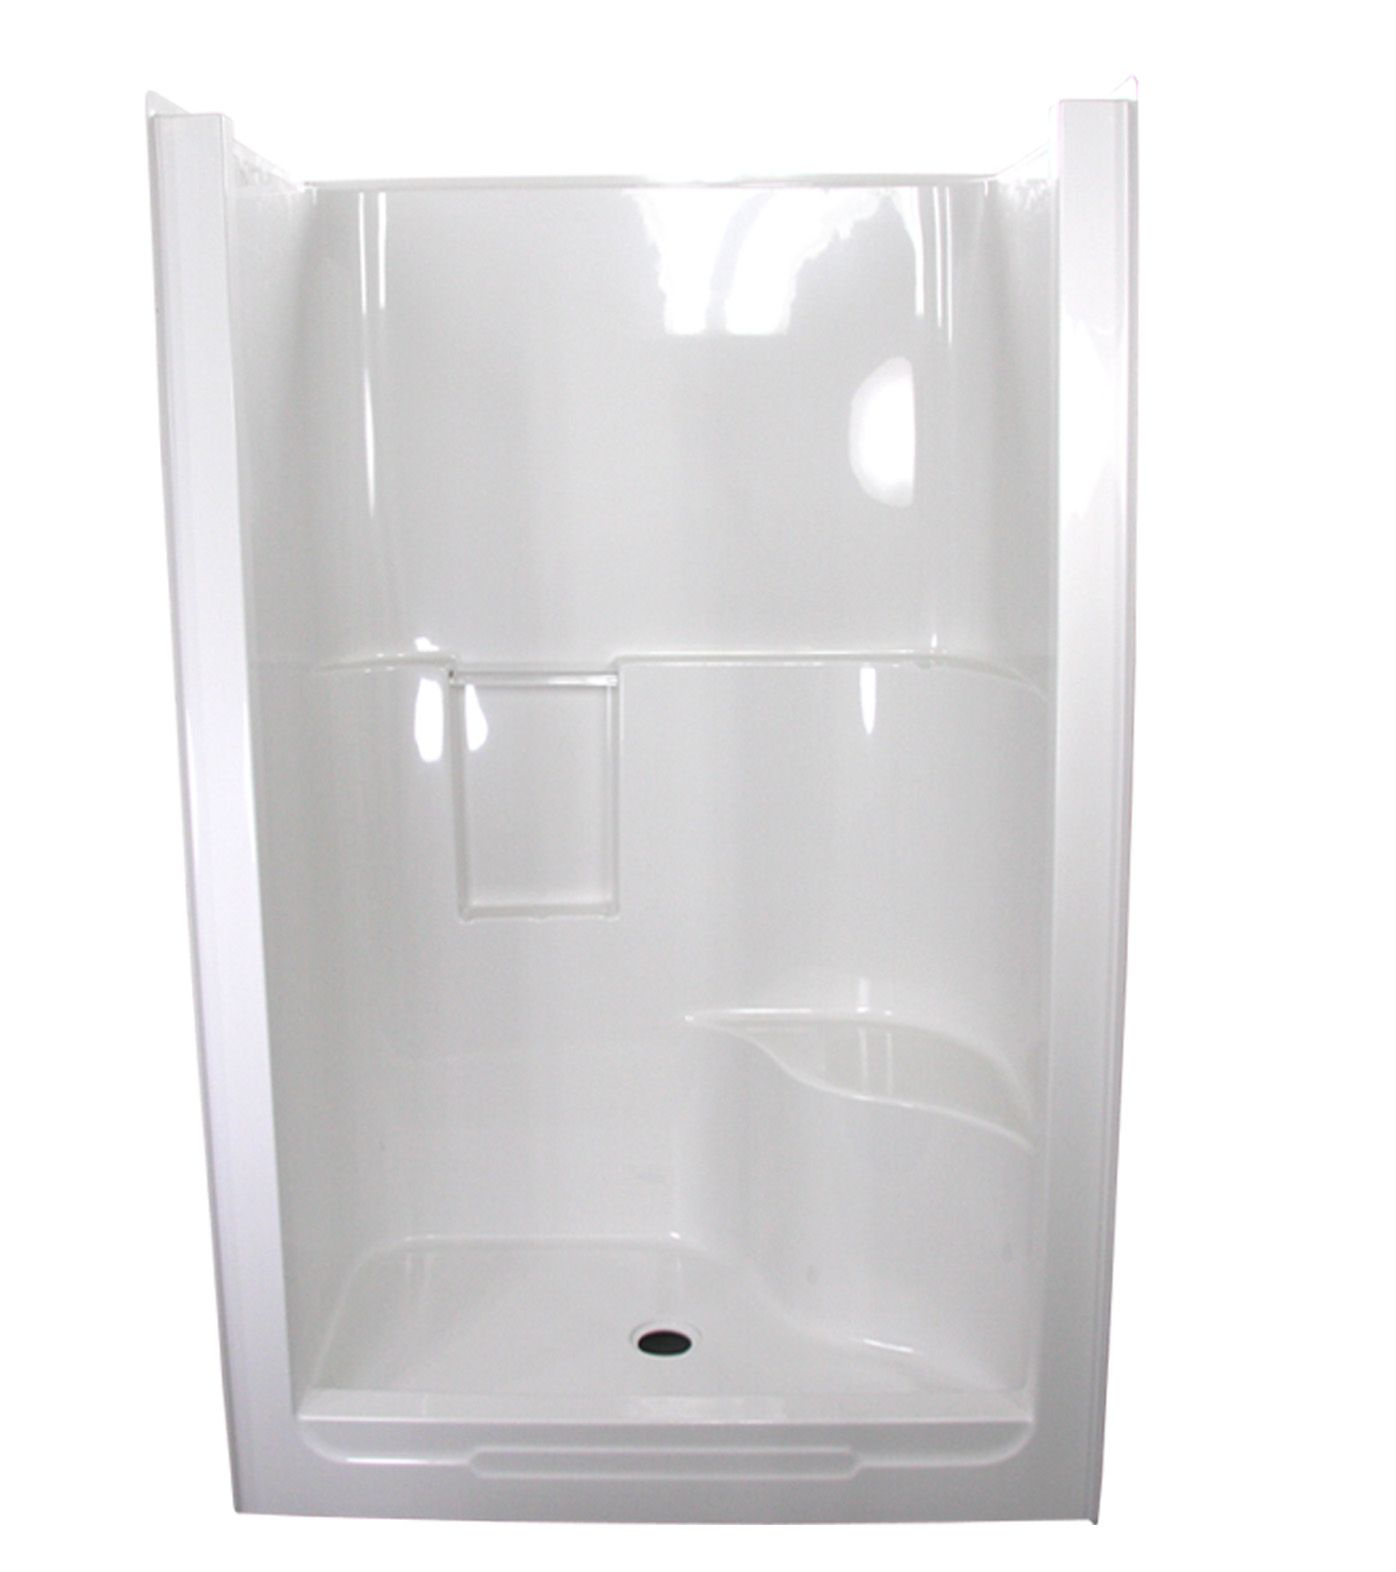 one piece fiberglass shower stalls Bing Images Johnnies Houses